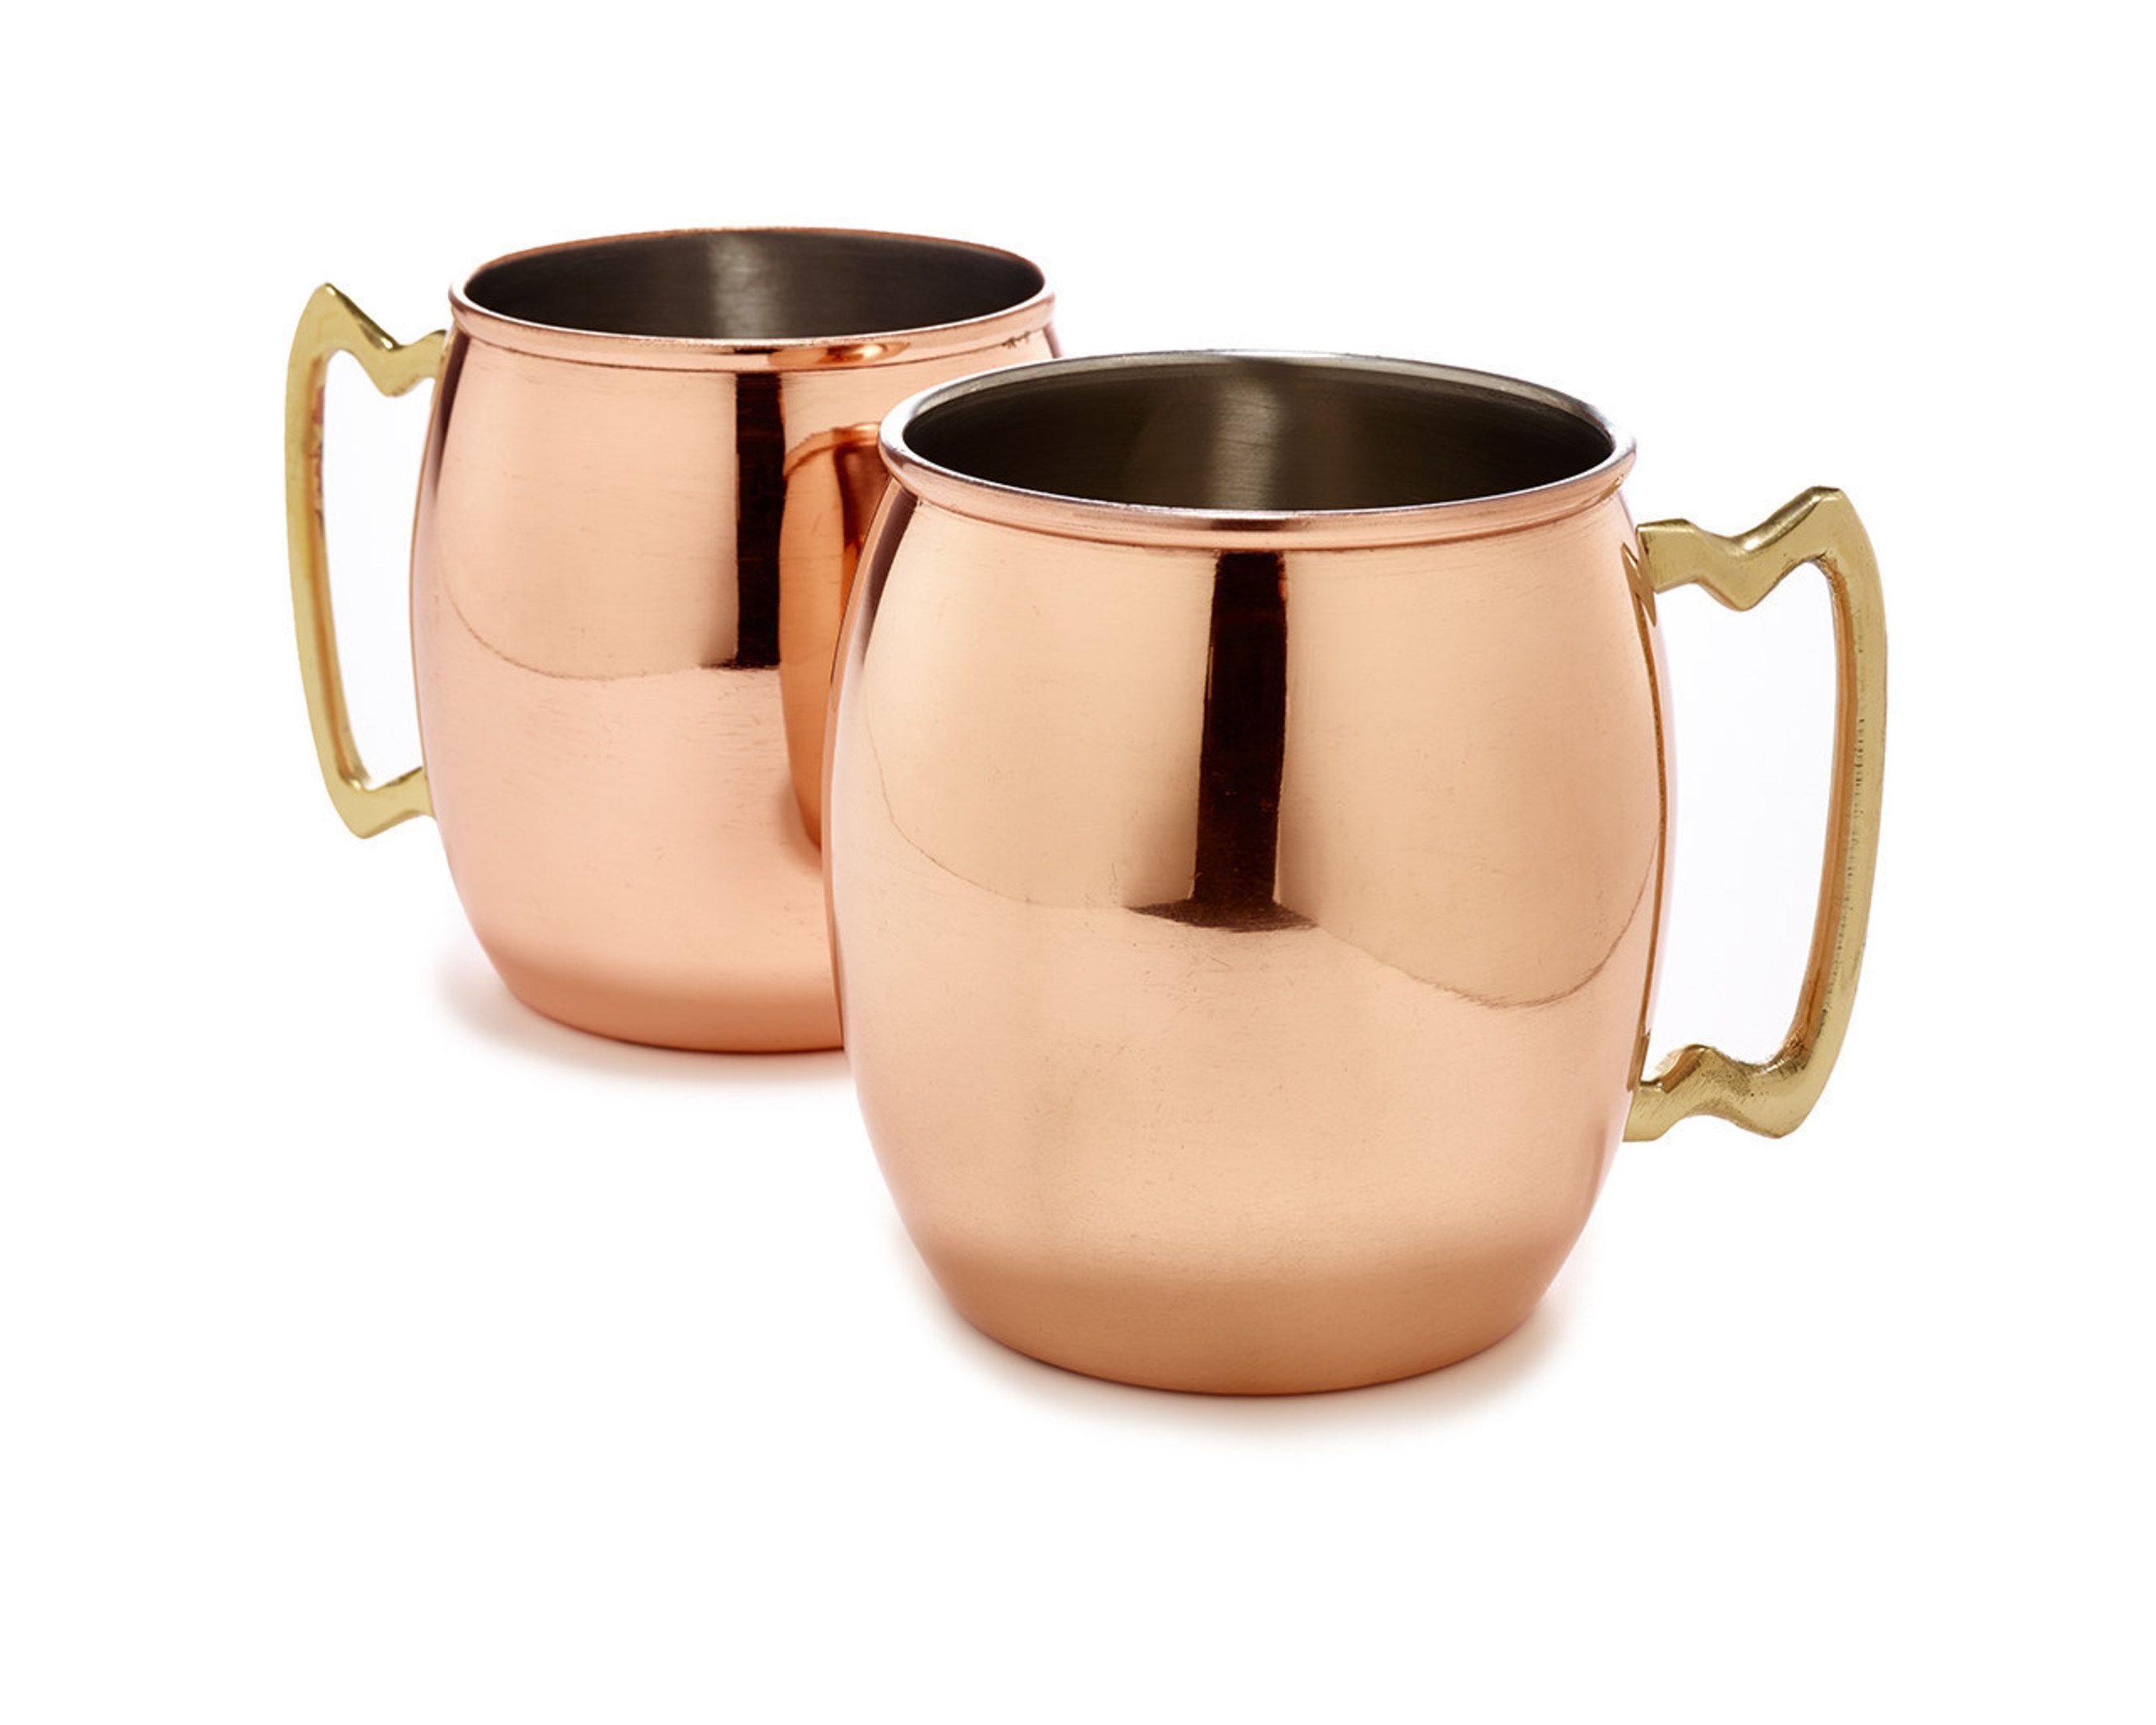 Copper Moscow Mule Mugs - T.J.Maxx